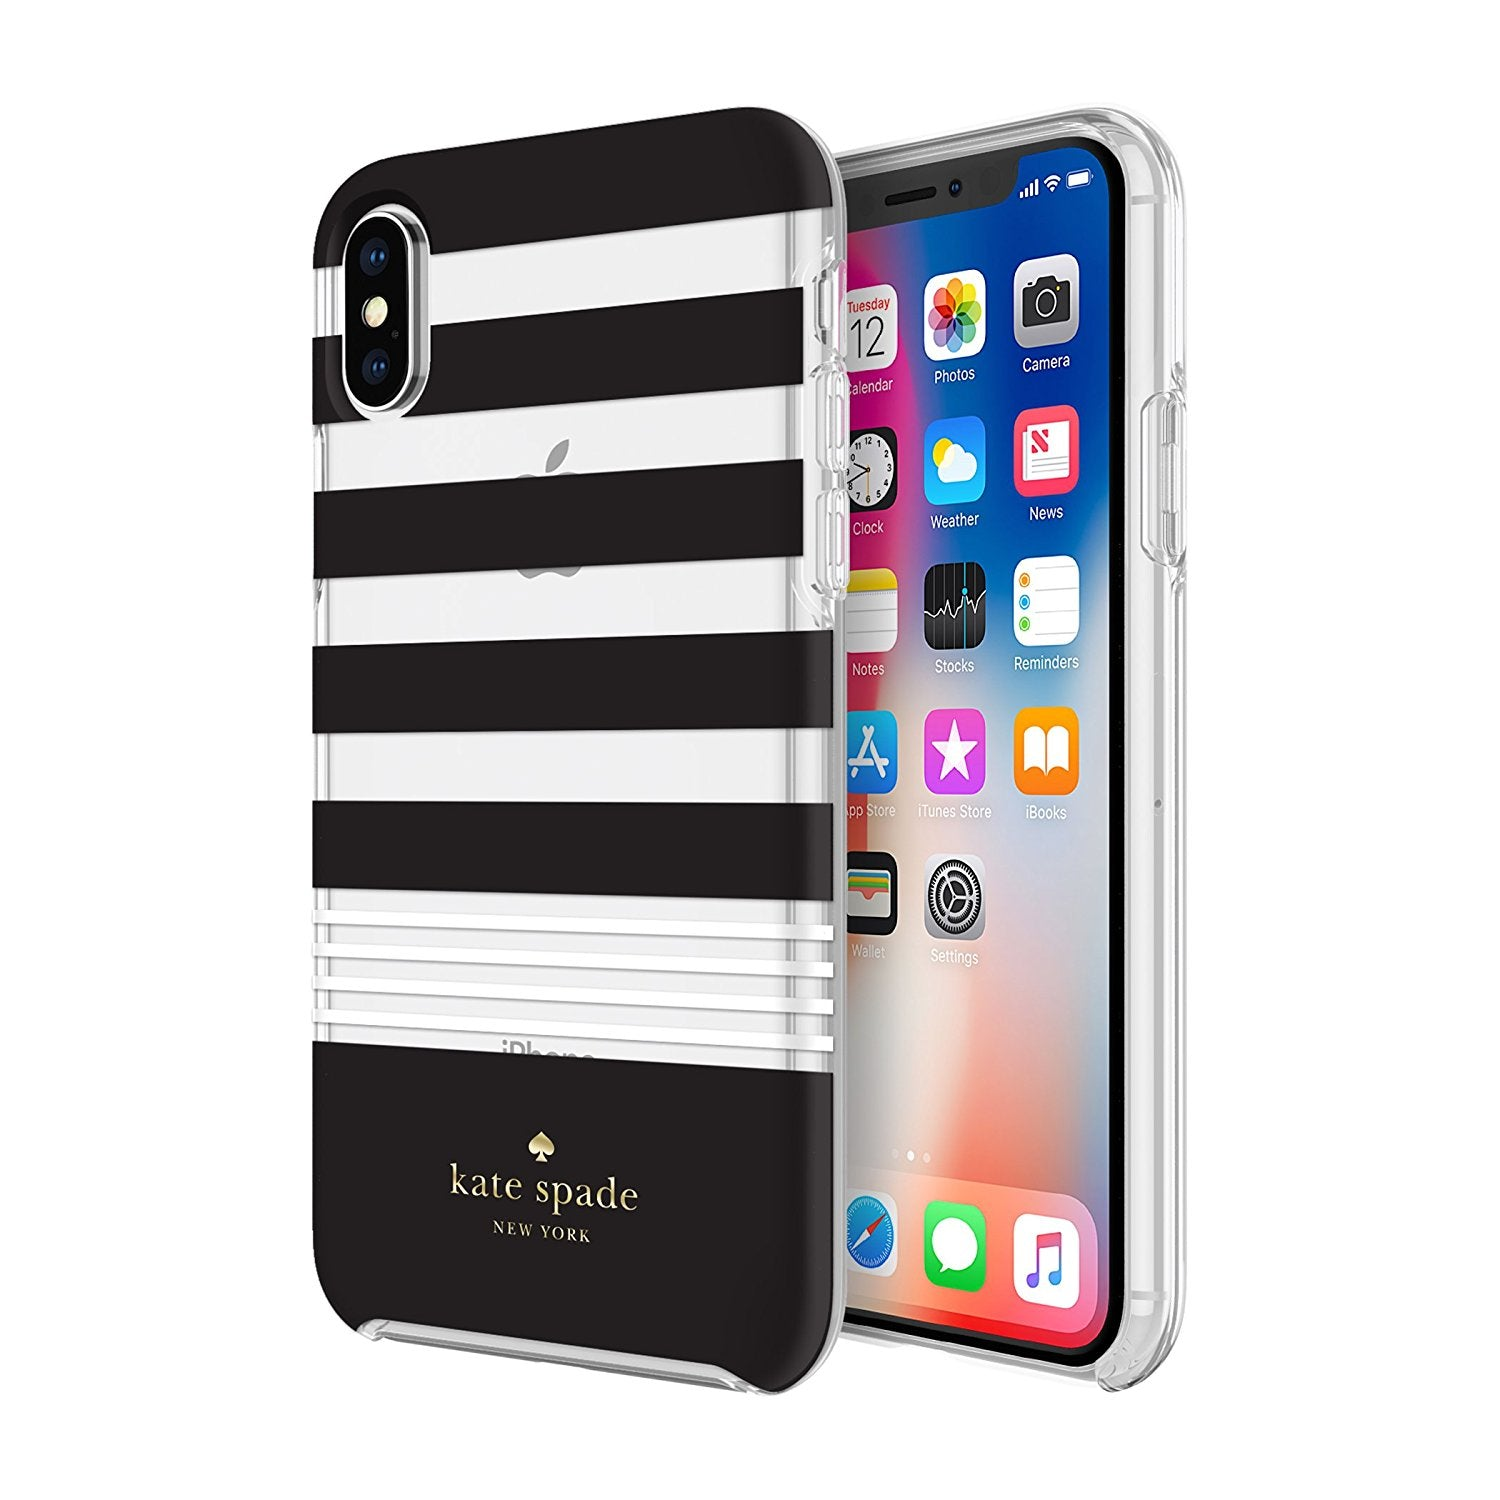 promo code 601ba 964e3 Kate Spade New York iPhone X Case - Clear Black and White Stripes